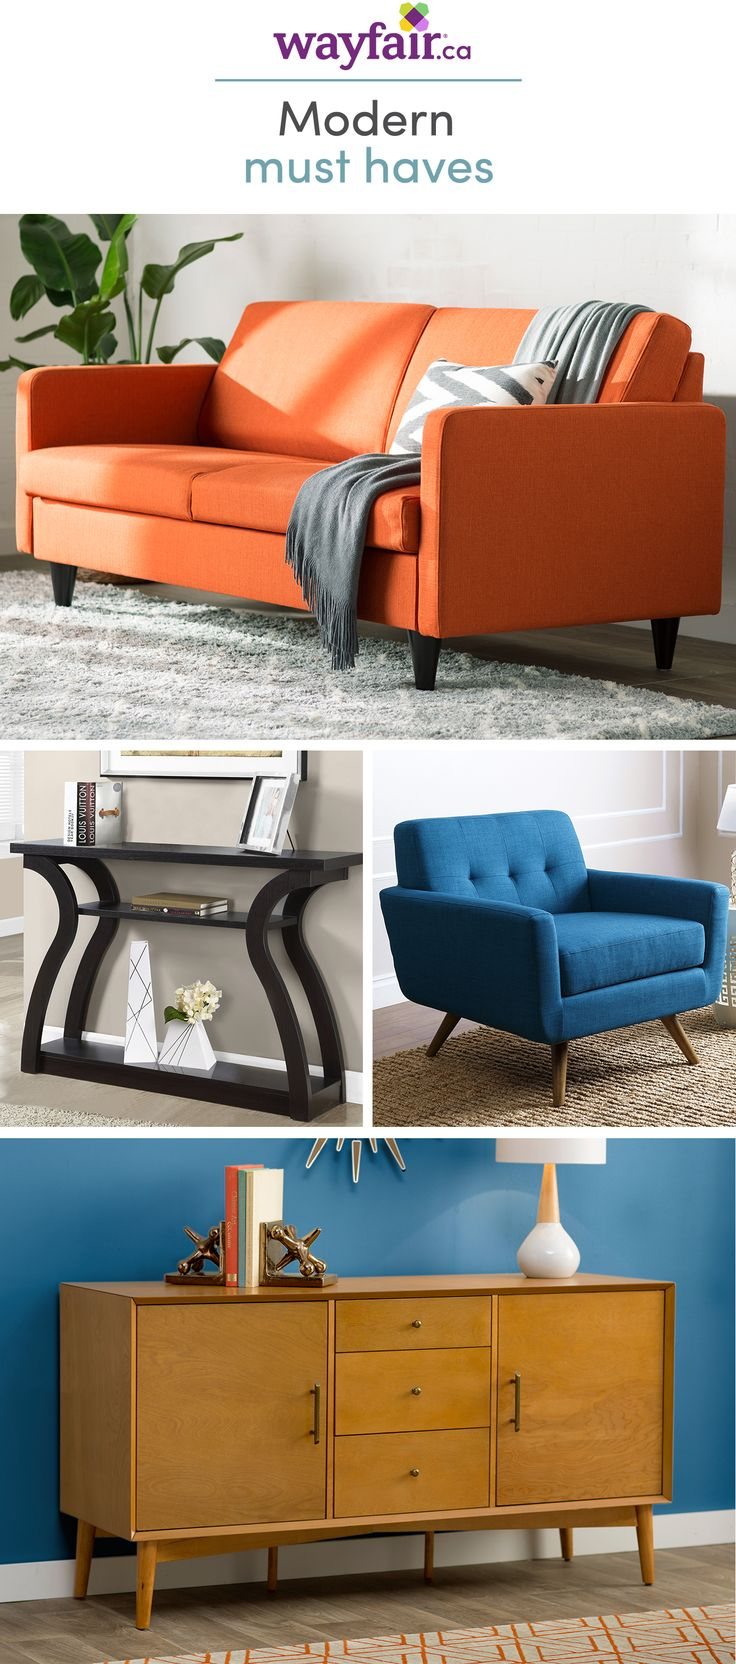 Make modern yours. Taking cues from mid-century style, this furniture is perfect for homes of every size, from first apartments to your dream home. Get inspired by retro designs with modern flair and decorate your space like a pro. Shop styles for every space at up to 70% OFF every day, and enjoy FREE shipping over $75 (even the big stuff!). Sign up to see more!